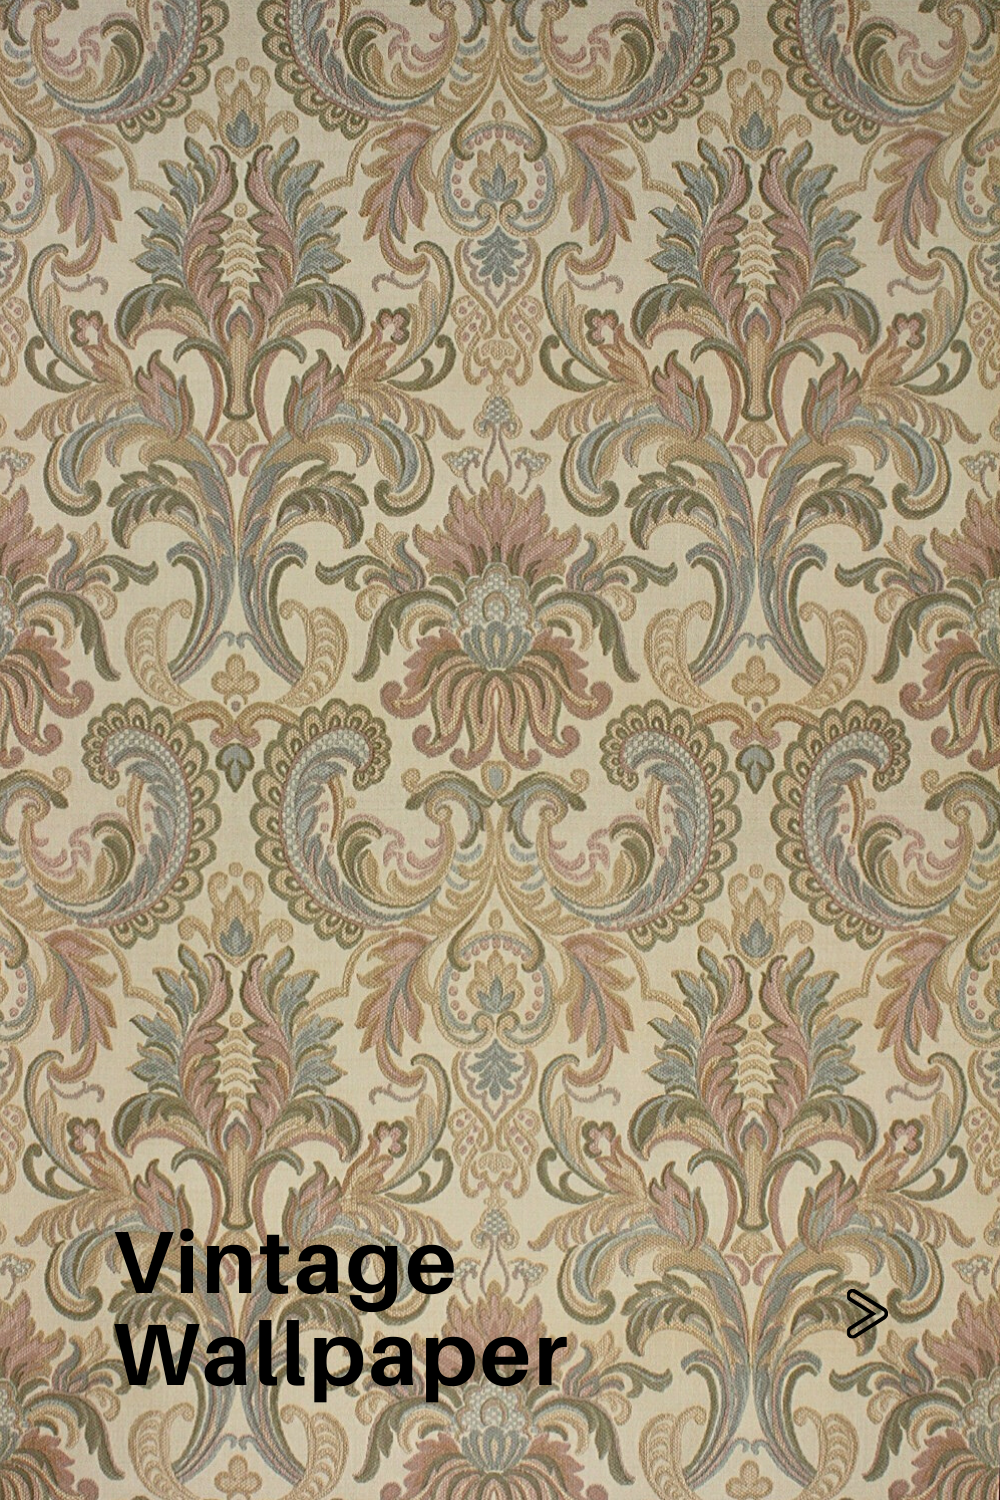 Vintage Wallpaper For Your Phone In 2020 Wallpapers Vintage Vintage Wallpaper Damask Wallpaper